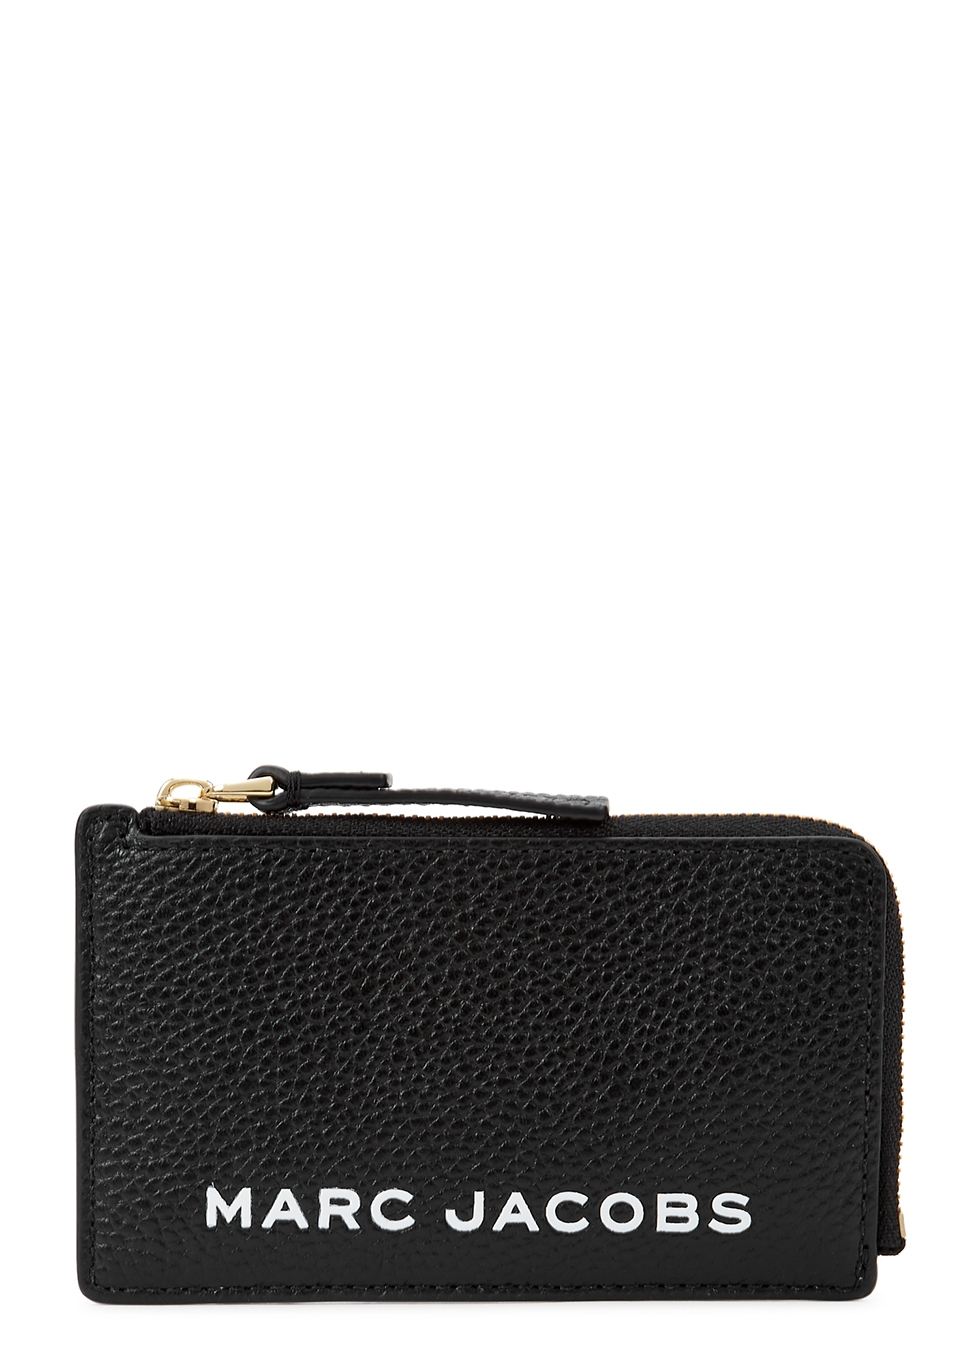 The Bold Small black grained leather wallet